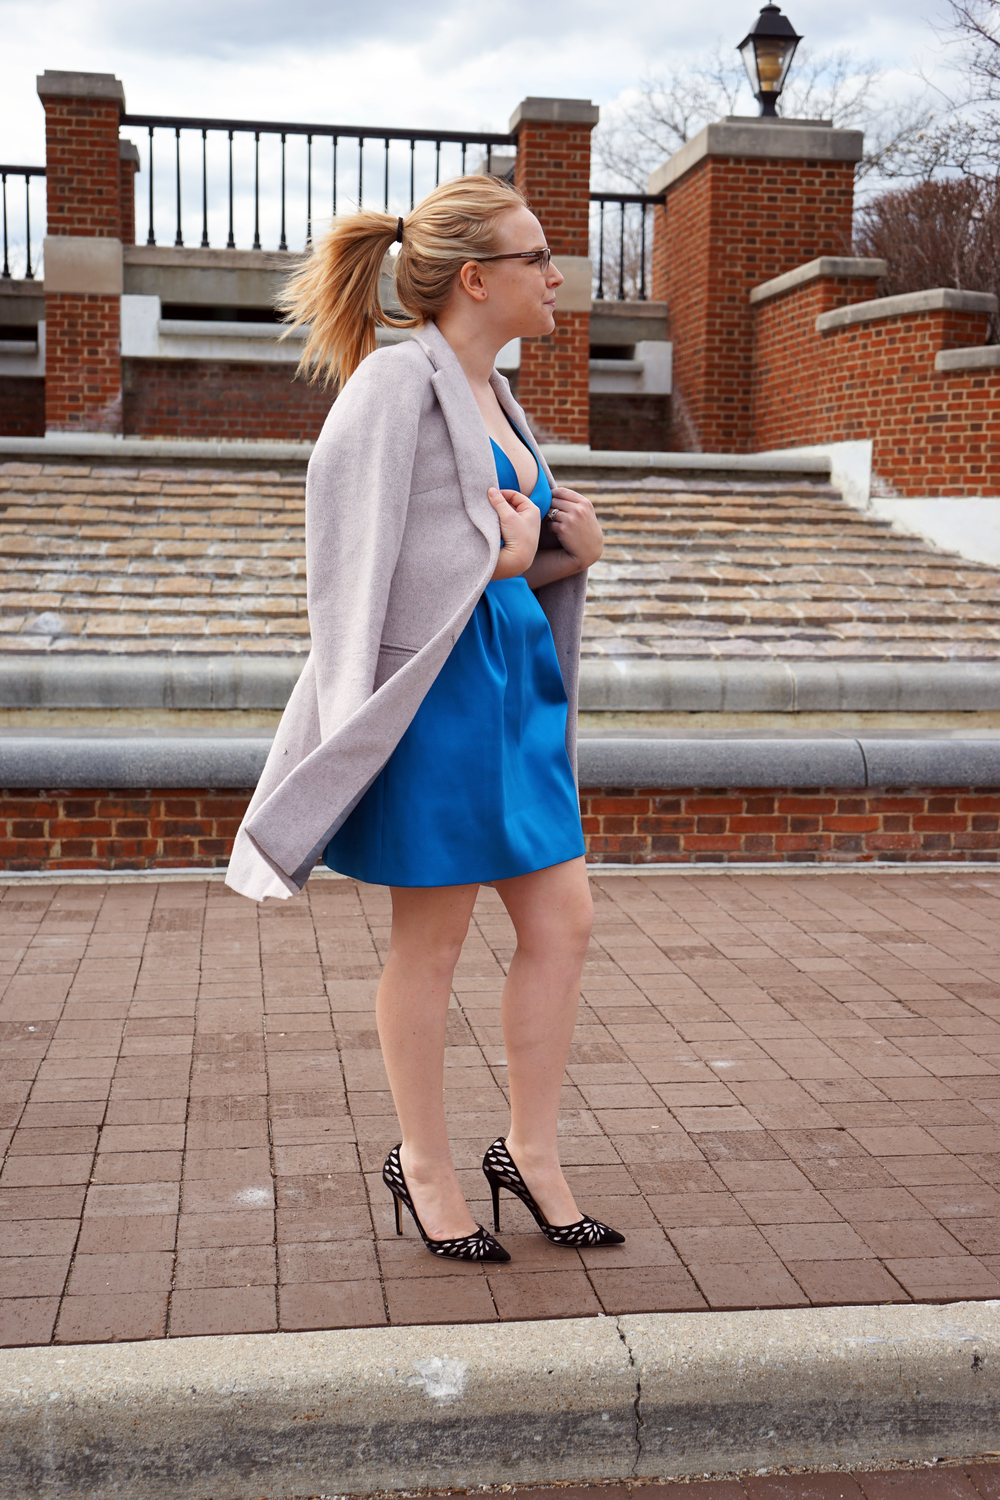 Topshop V-neck satin minidress, Helene Berman Future College Notch coat, Jimmy Choo Daysha heels, Anthropologie Florilege coat, Steve Madden Feliz sandals - Maggie a la Mode